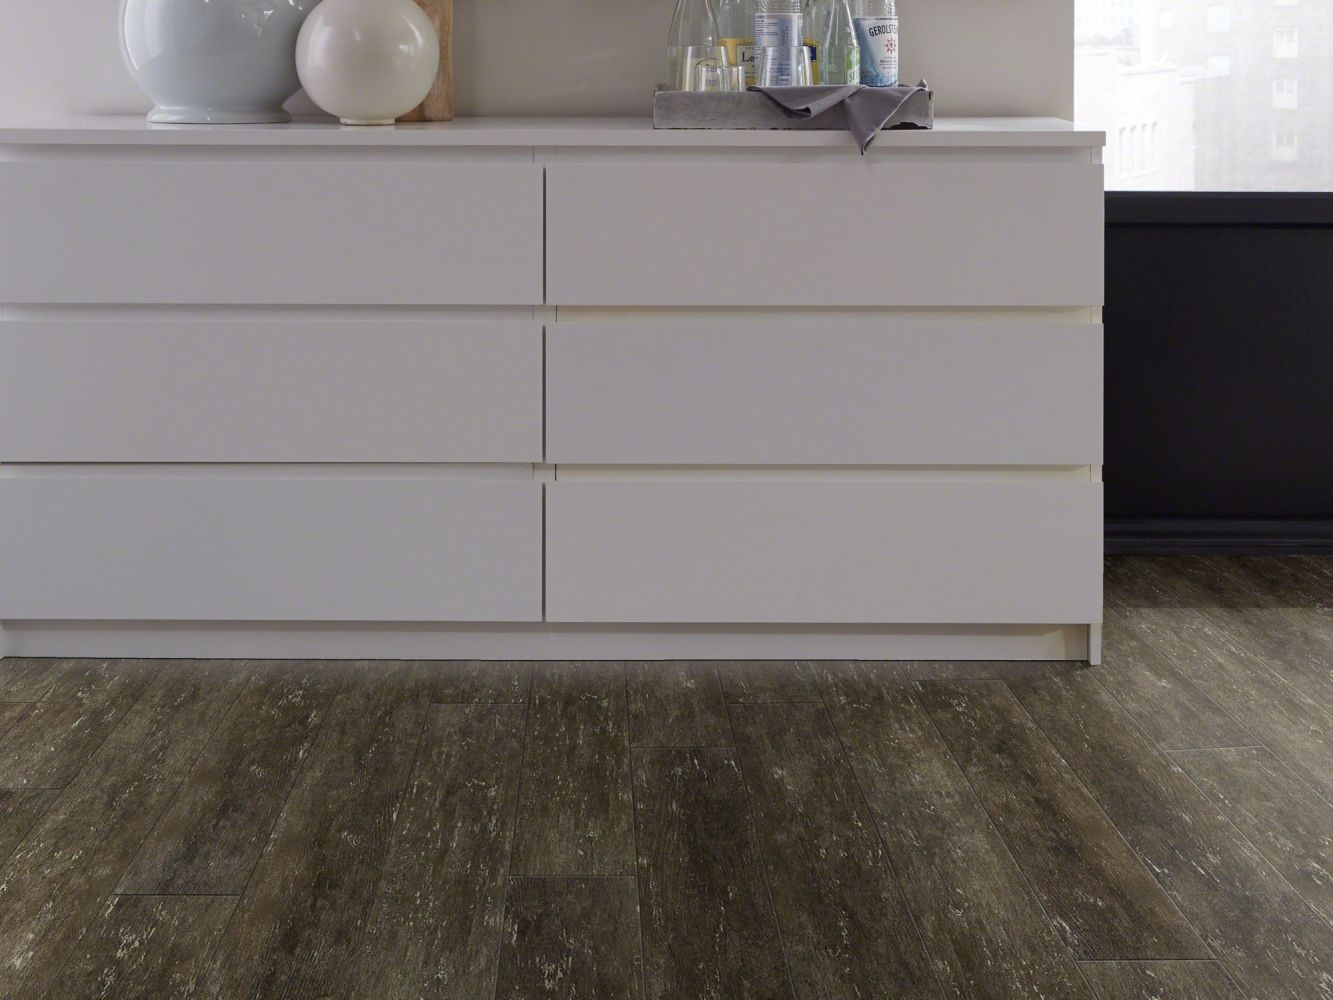 Shaw Floors Resilient Residential Easy Avenue Vintage 00504_043VF